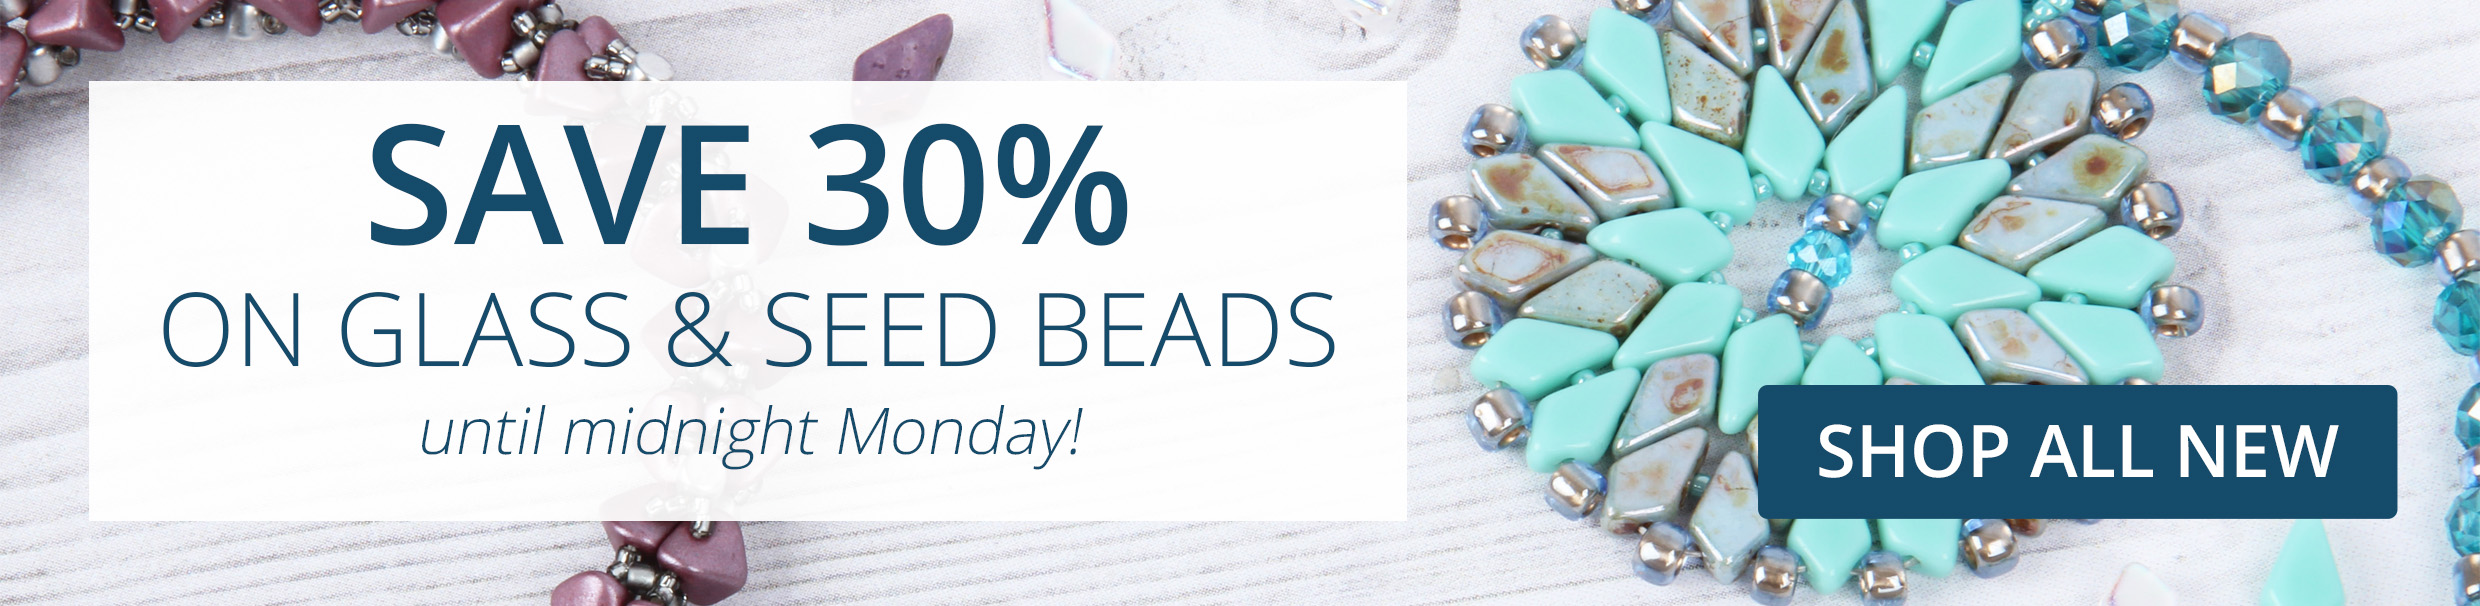 30% off glass and seeds